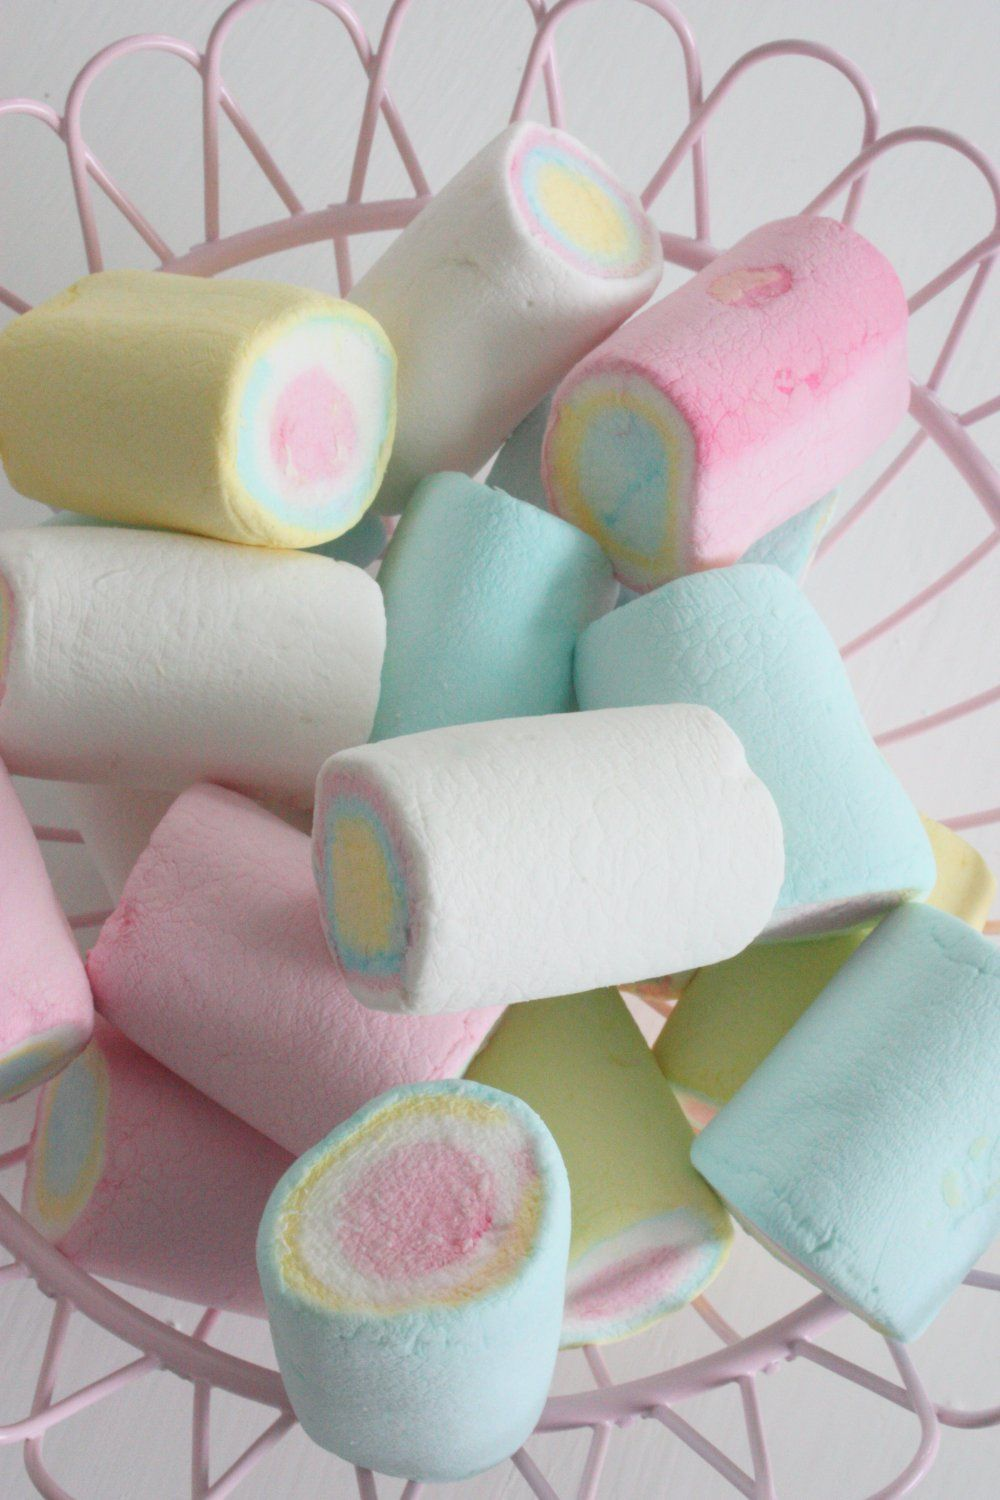 Pastel Candy Makeup Tutorial: Pastels.quenalbertini: Marshmallow Candy